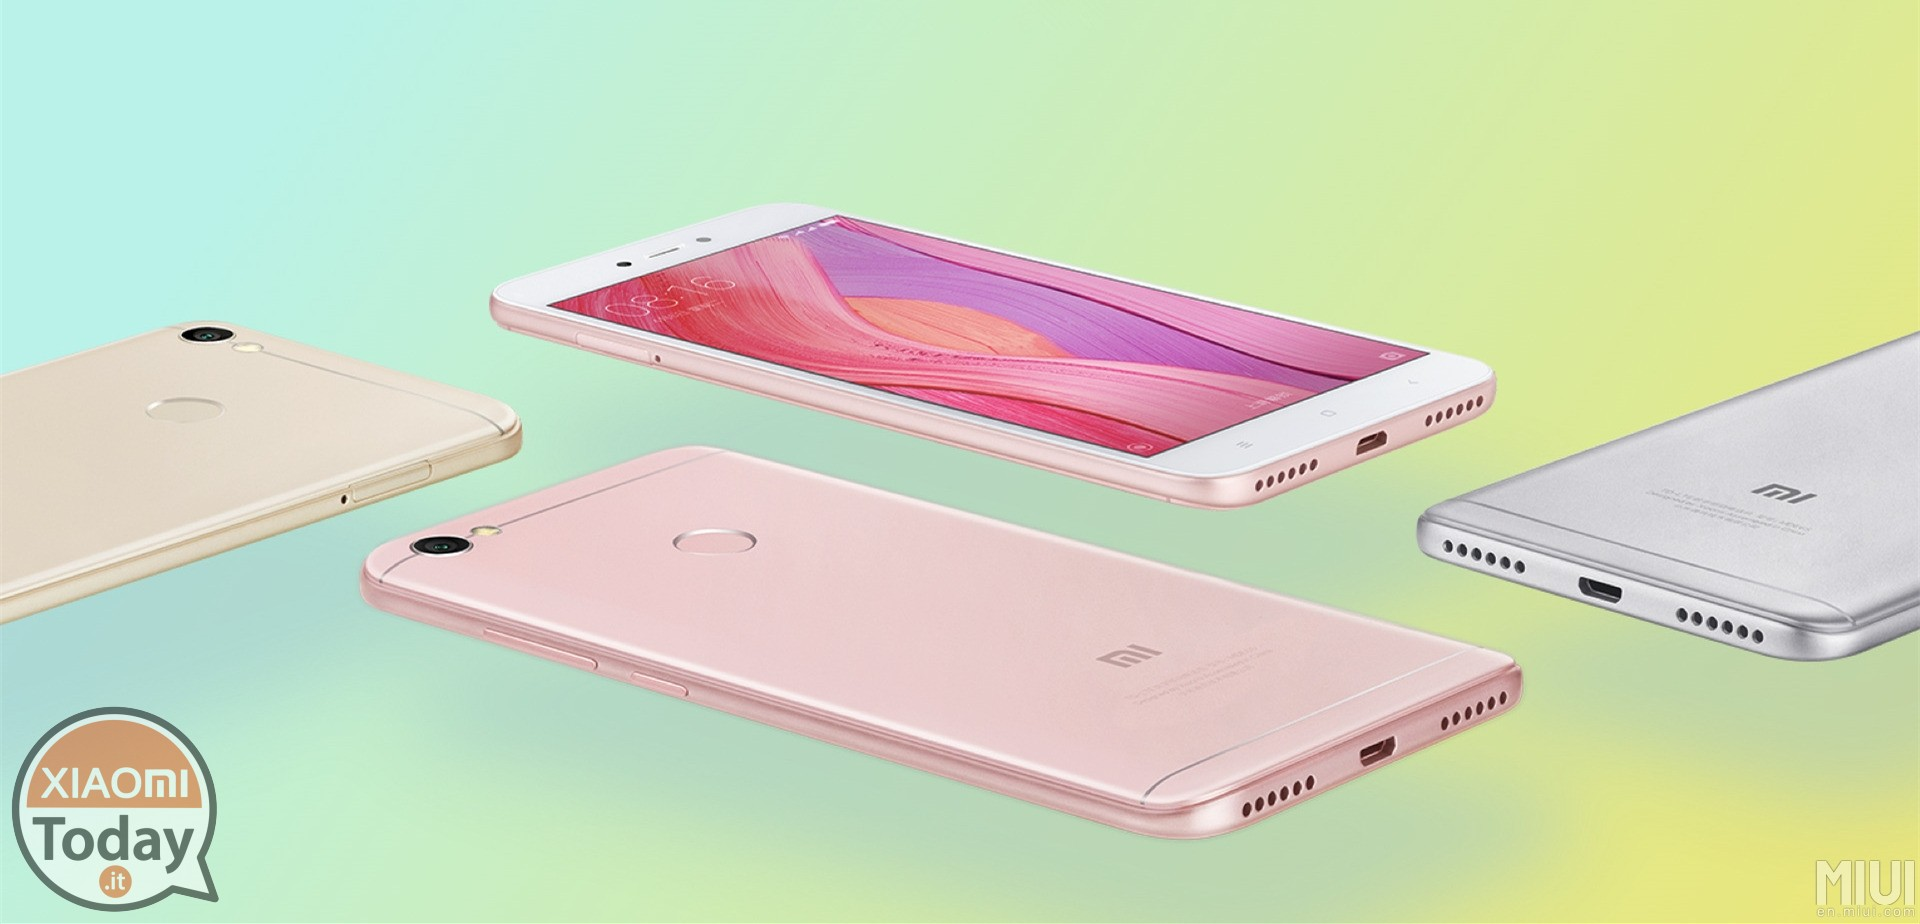 xiaomi-redmi -note-5a-official-specifications-techniques-features